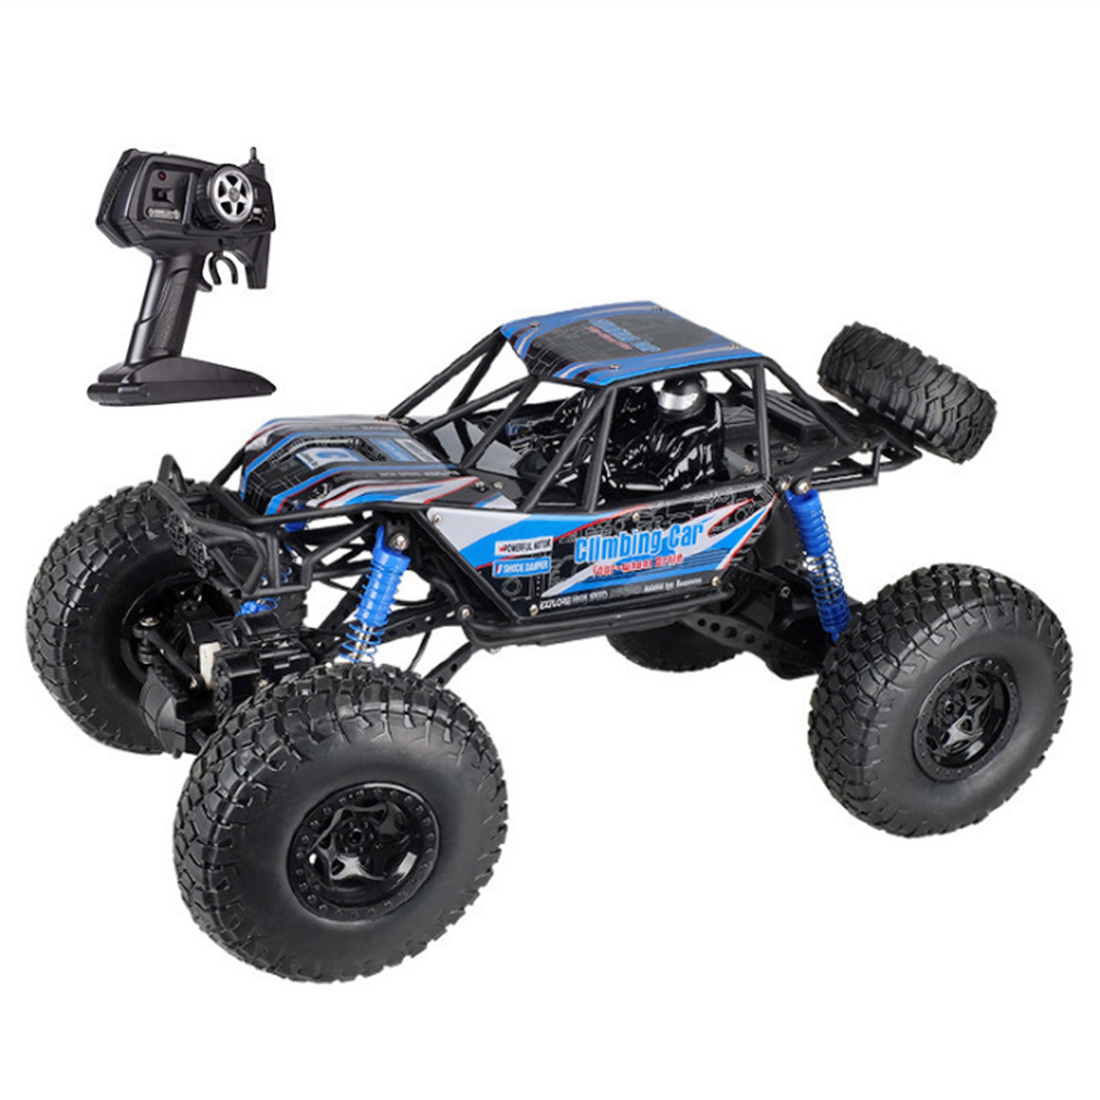 48cm 1:10 4WD 2.4G RC Monster Truck High Speed Racing Car Off Road Vehicle For Child School Play Education Birthday Gift Blue